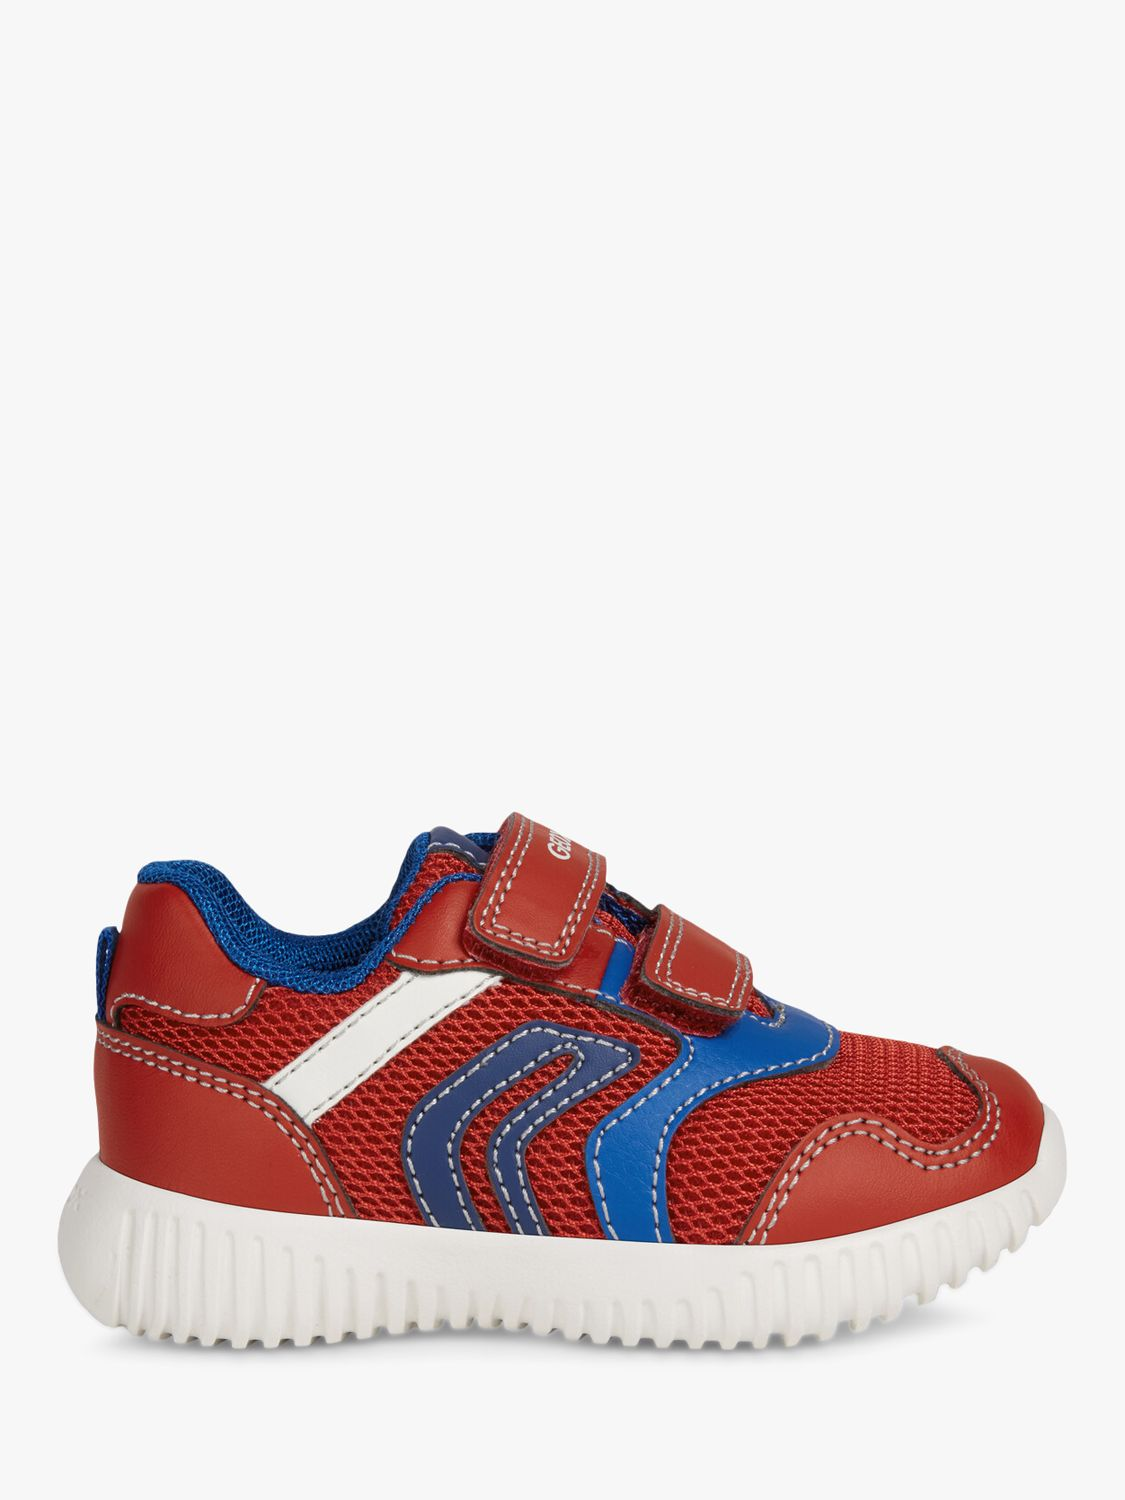 Geox Geox Children's Waviness Riptape Trainers, Red/Navy